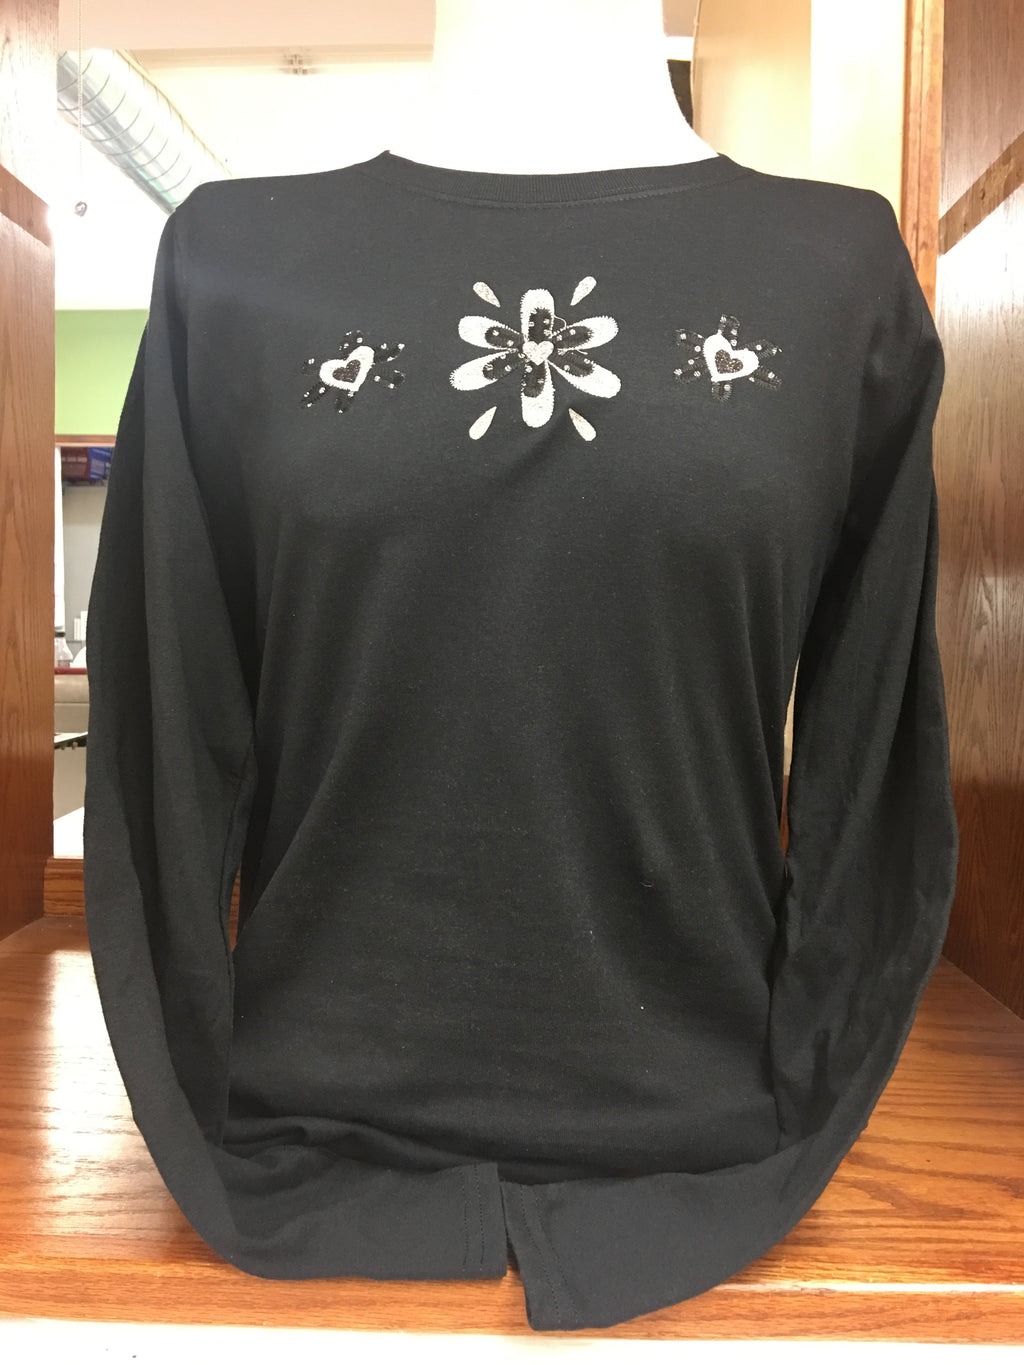 BLACK SPARKLE FLOWER LONG SLEEVE T-SHIRT SM-XL